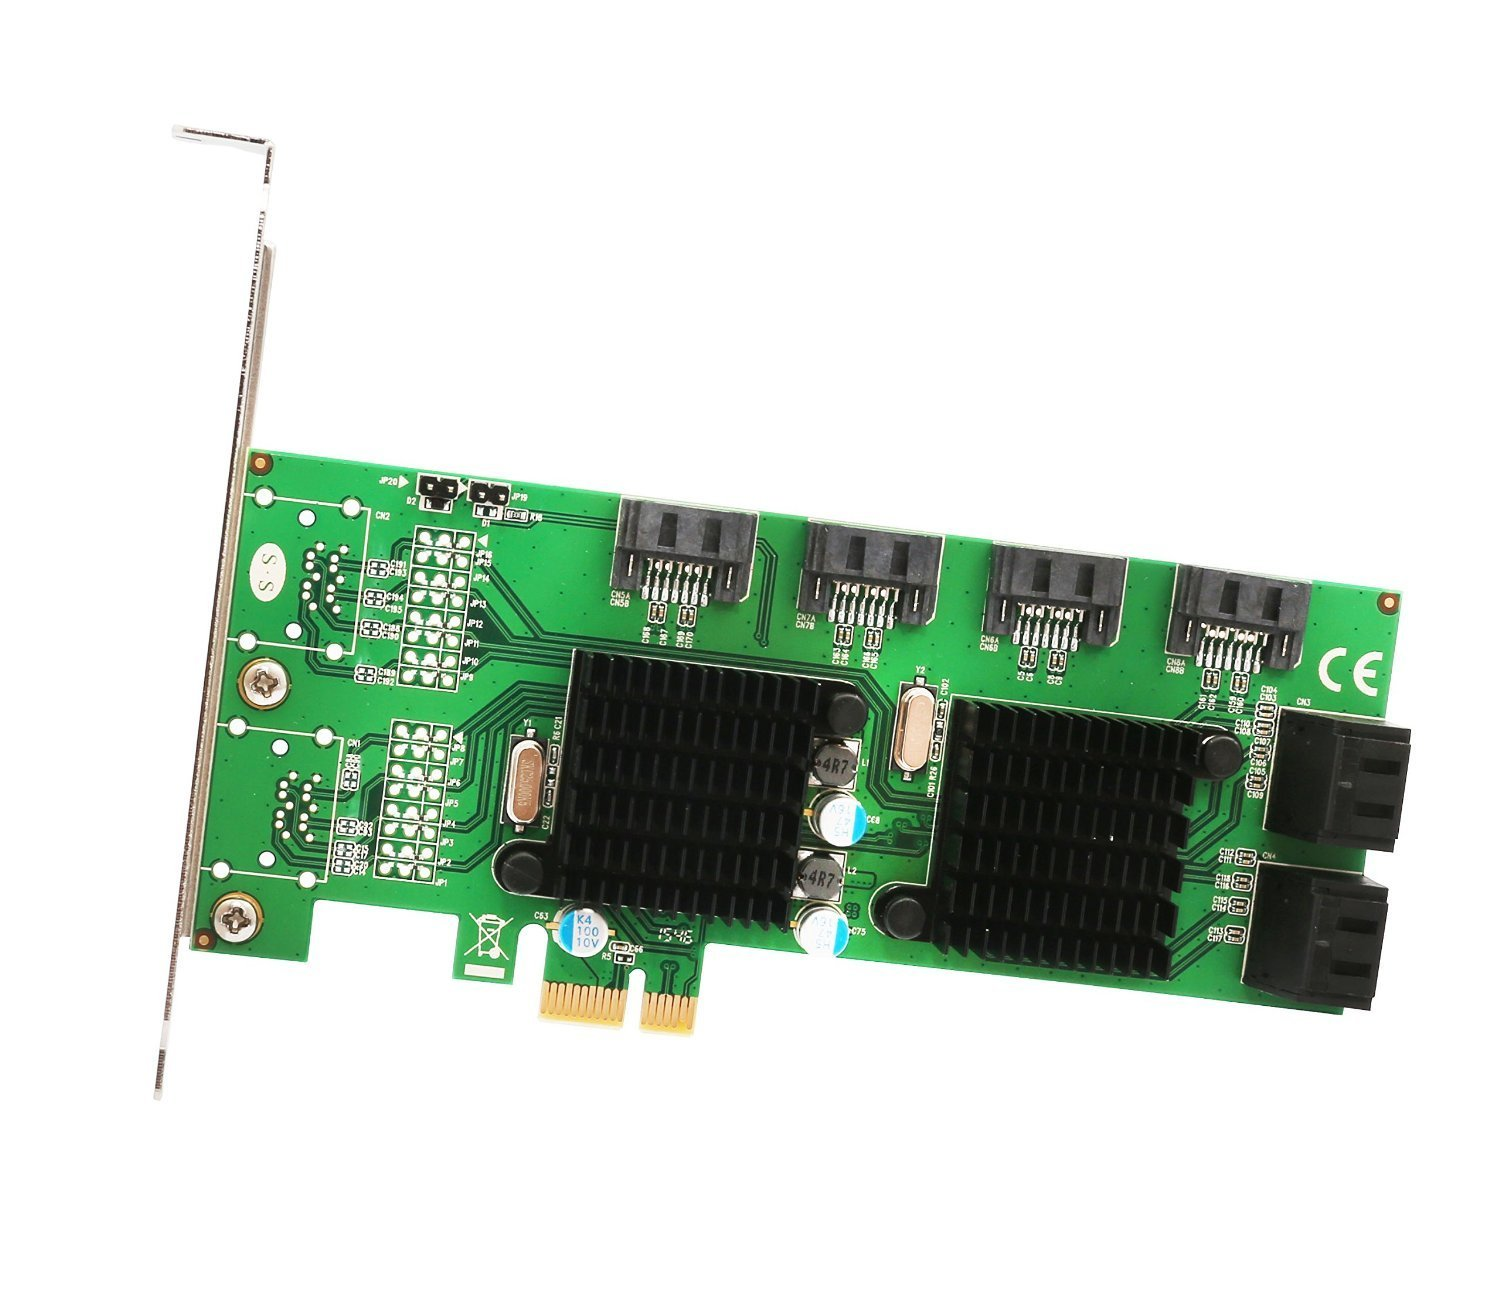 Syba SD-PEX40104 PCI-Express 8-Port Internal SATA 6Gbps Dual Chipset PCI-E V2.0 x 1 Slot Controller Card